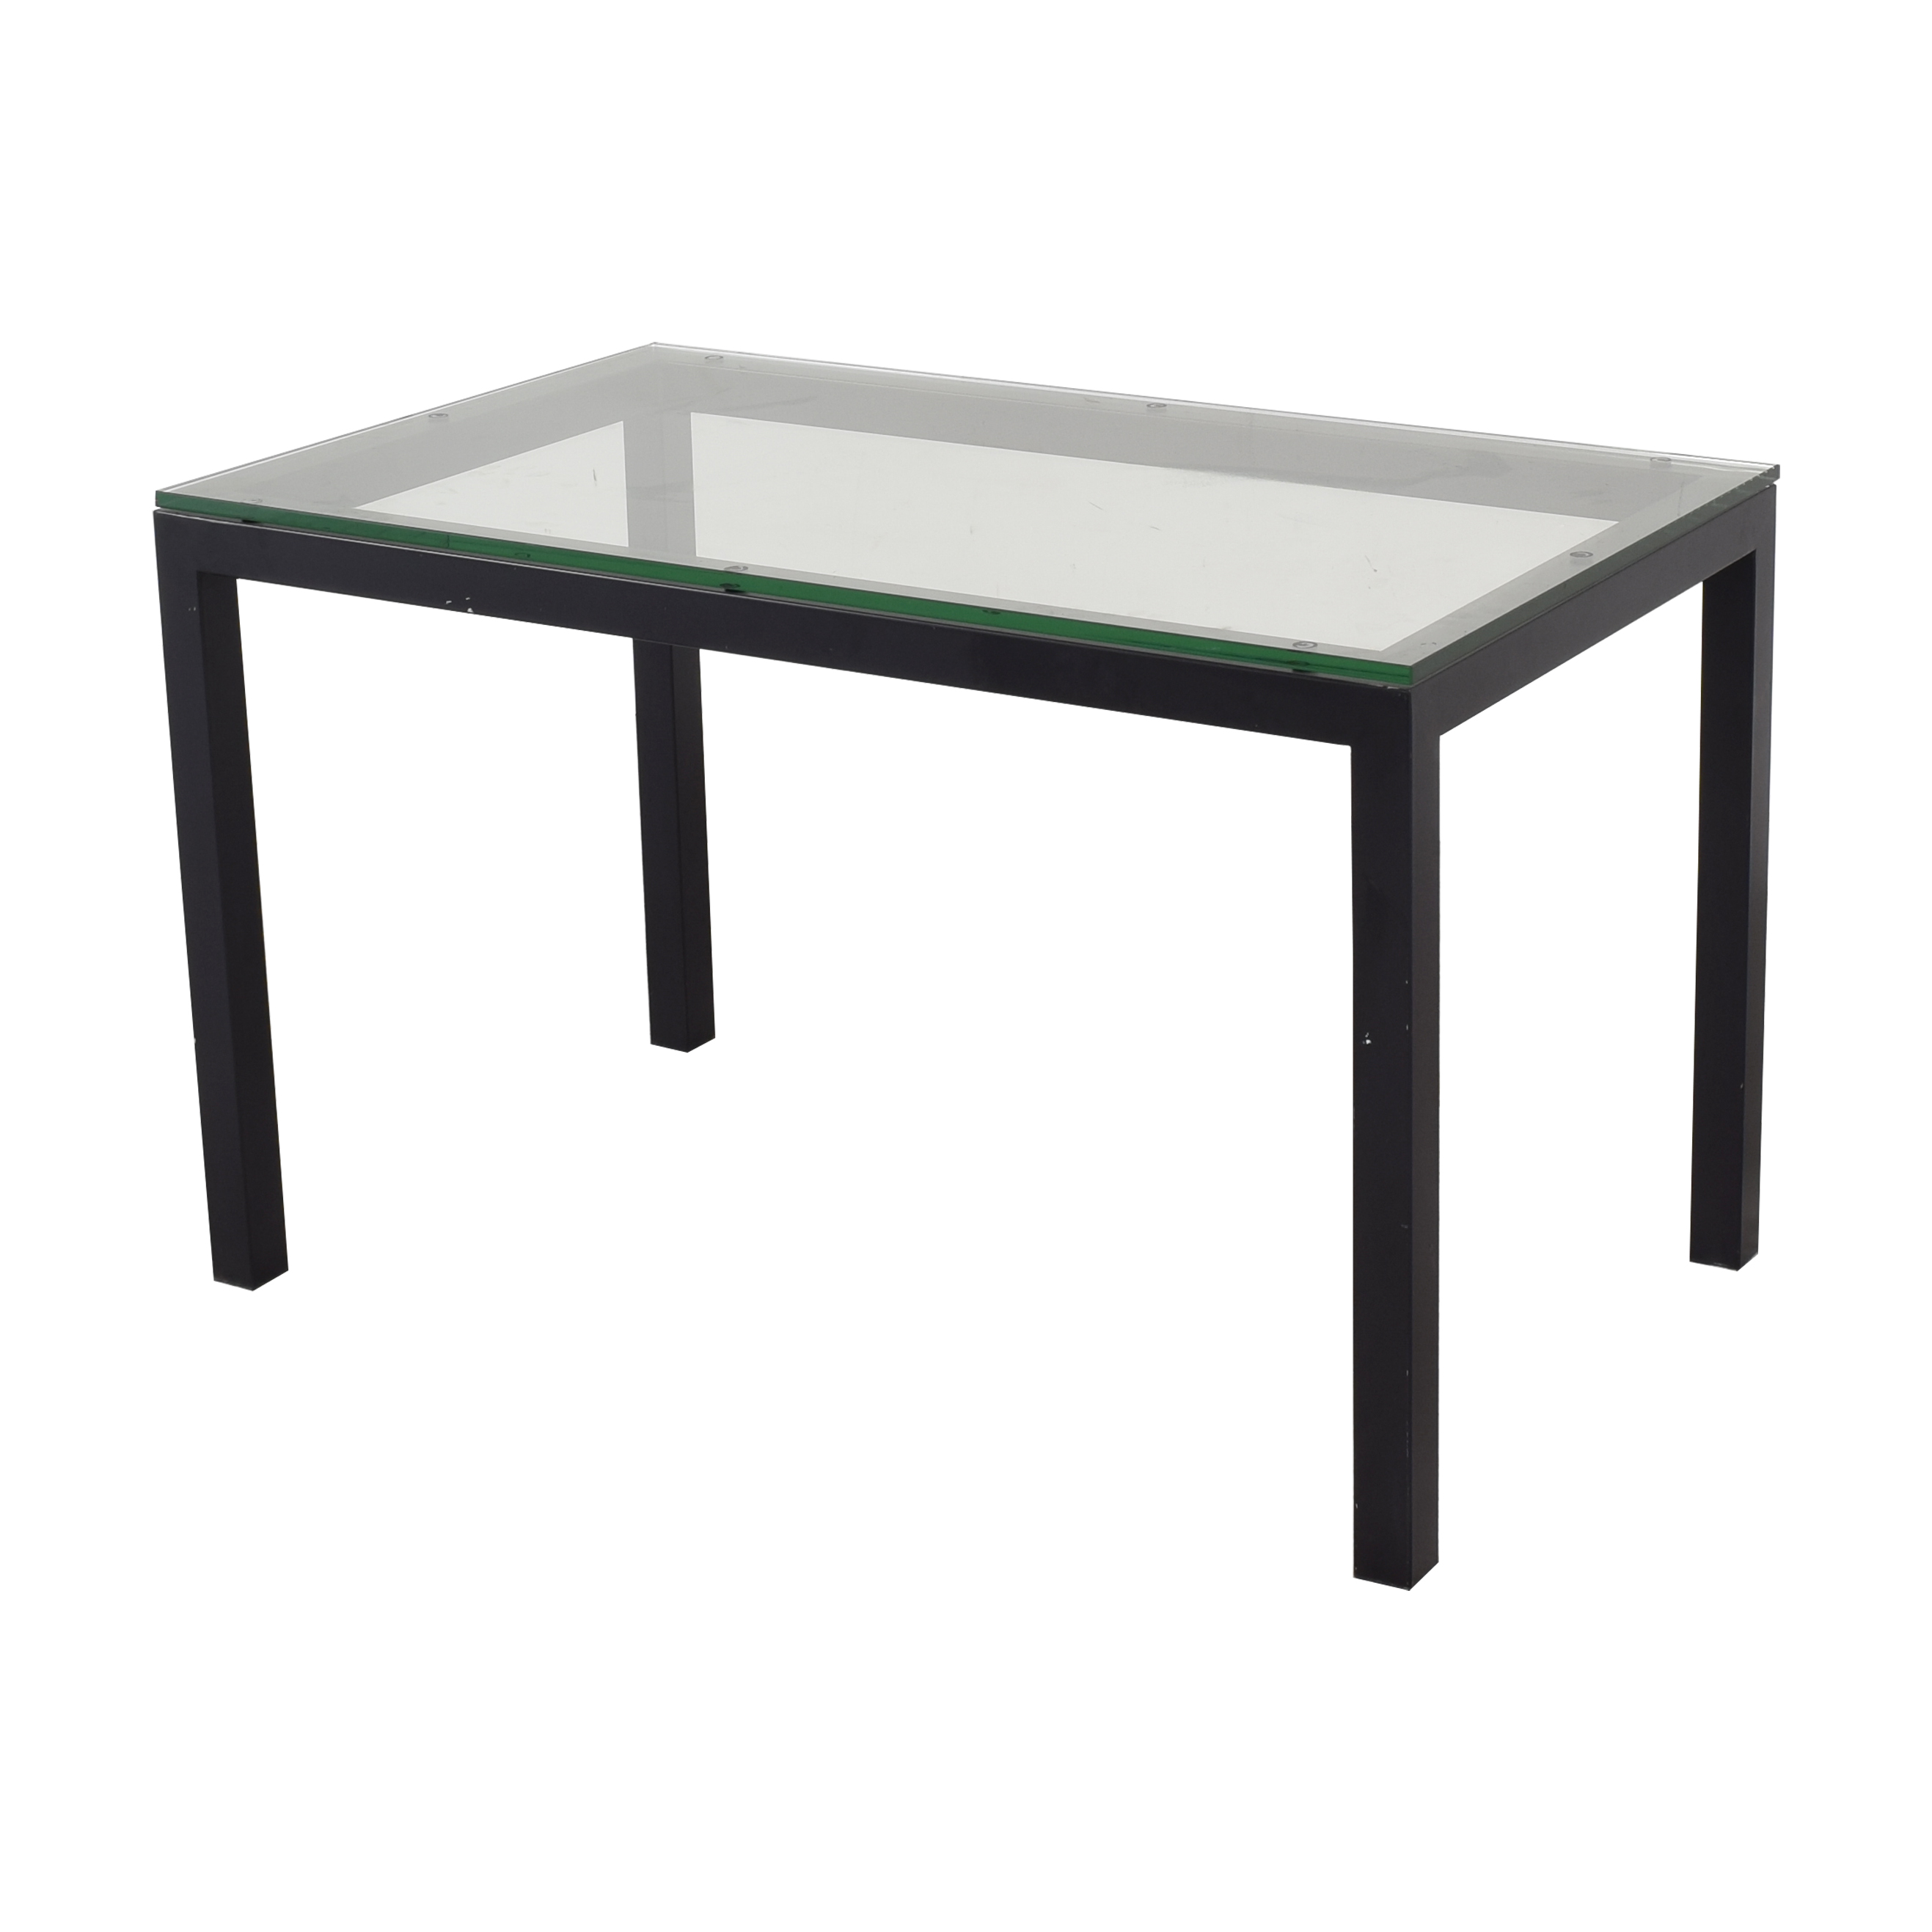 Crate & Barrel Crate & Barrel Parsons Dining Table pa